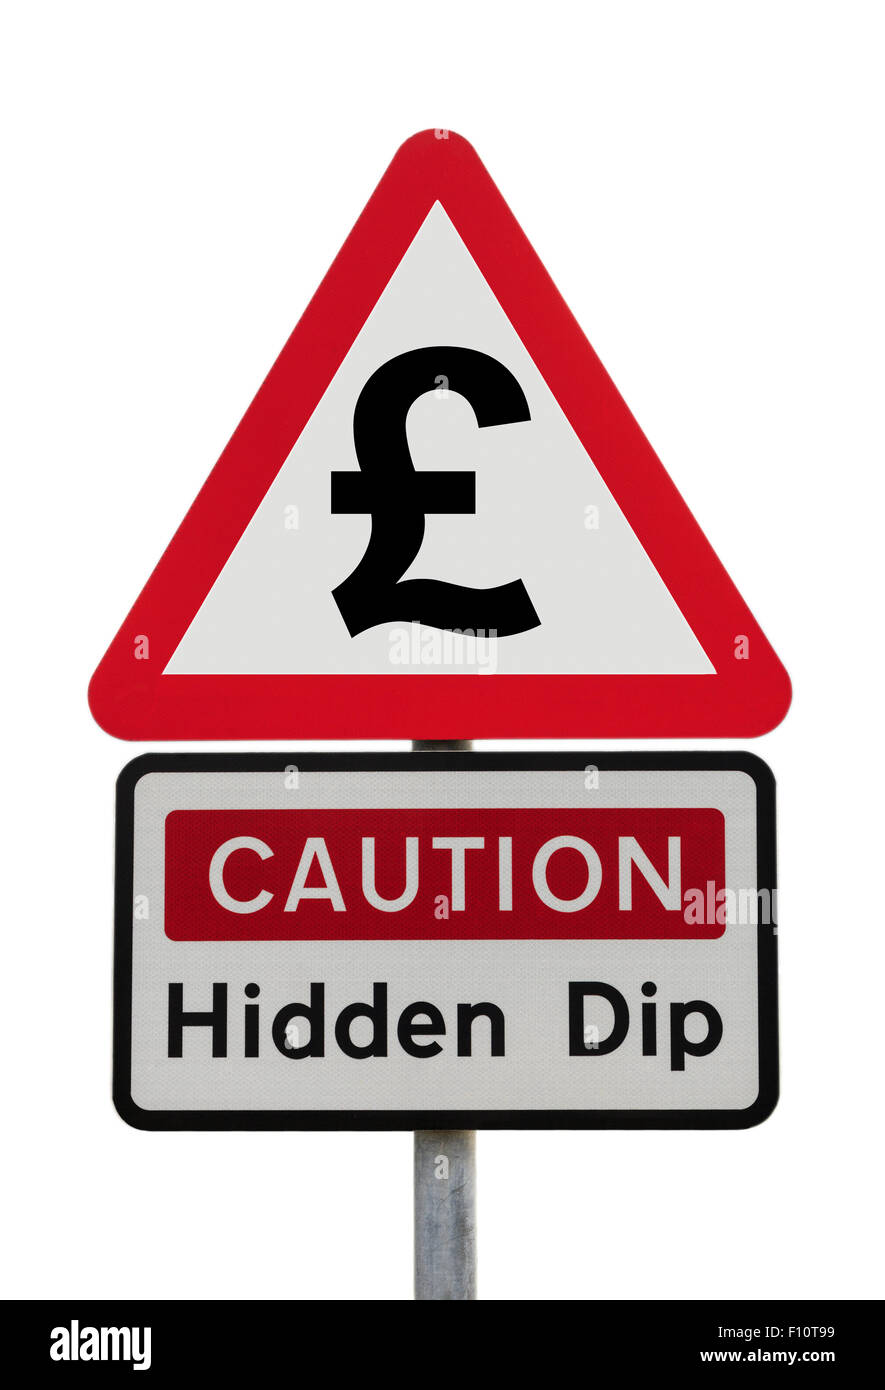 Danger Avertissement Attention panneau triangulaire Dip cachés avec £ pound sign pour illustrer l'avenir Photo Stock